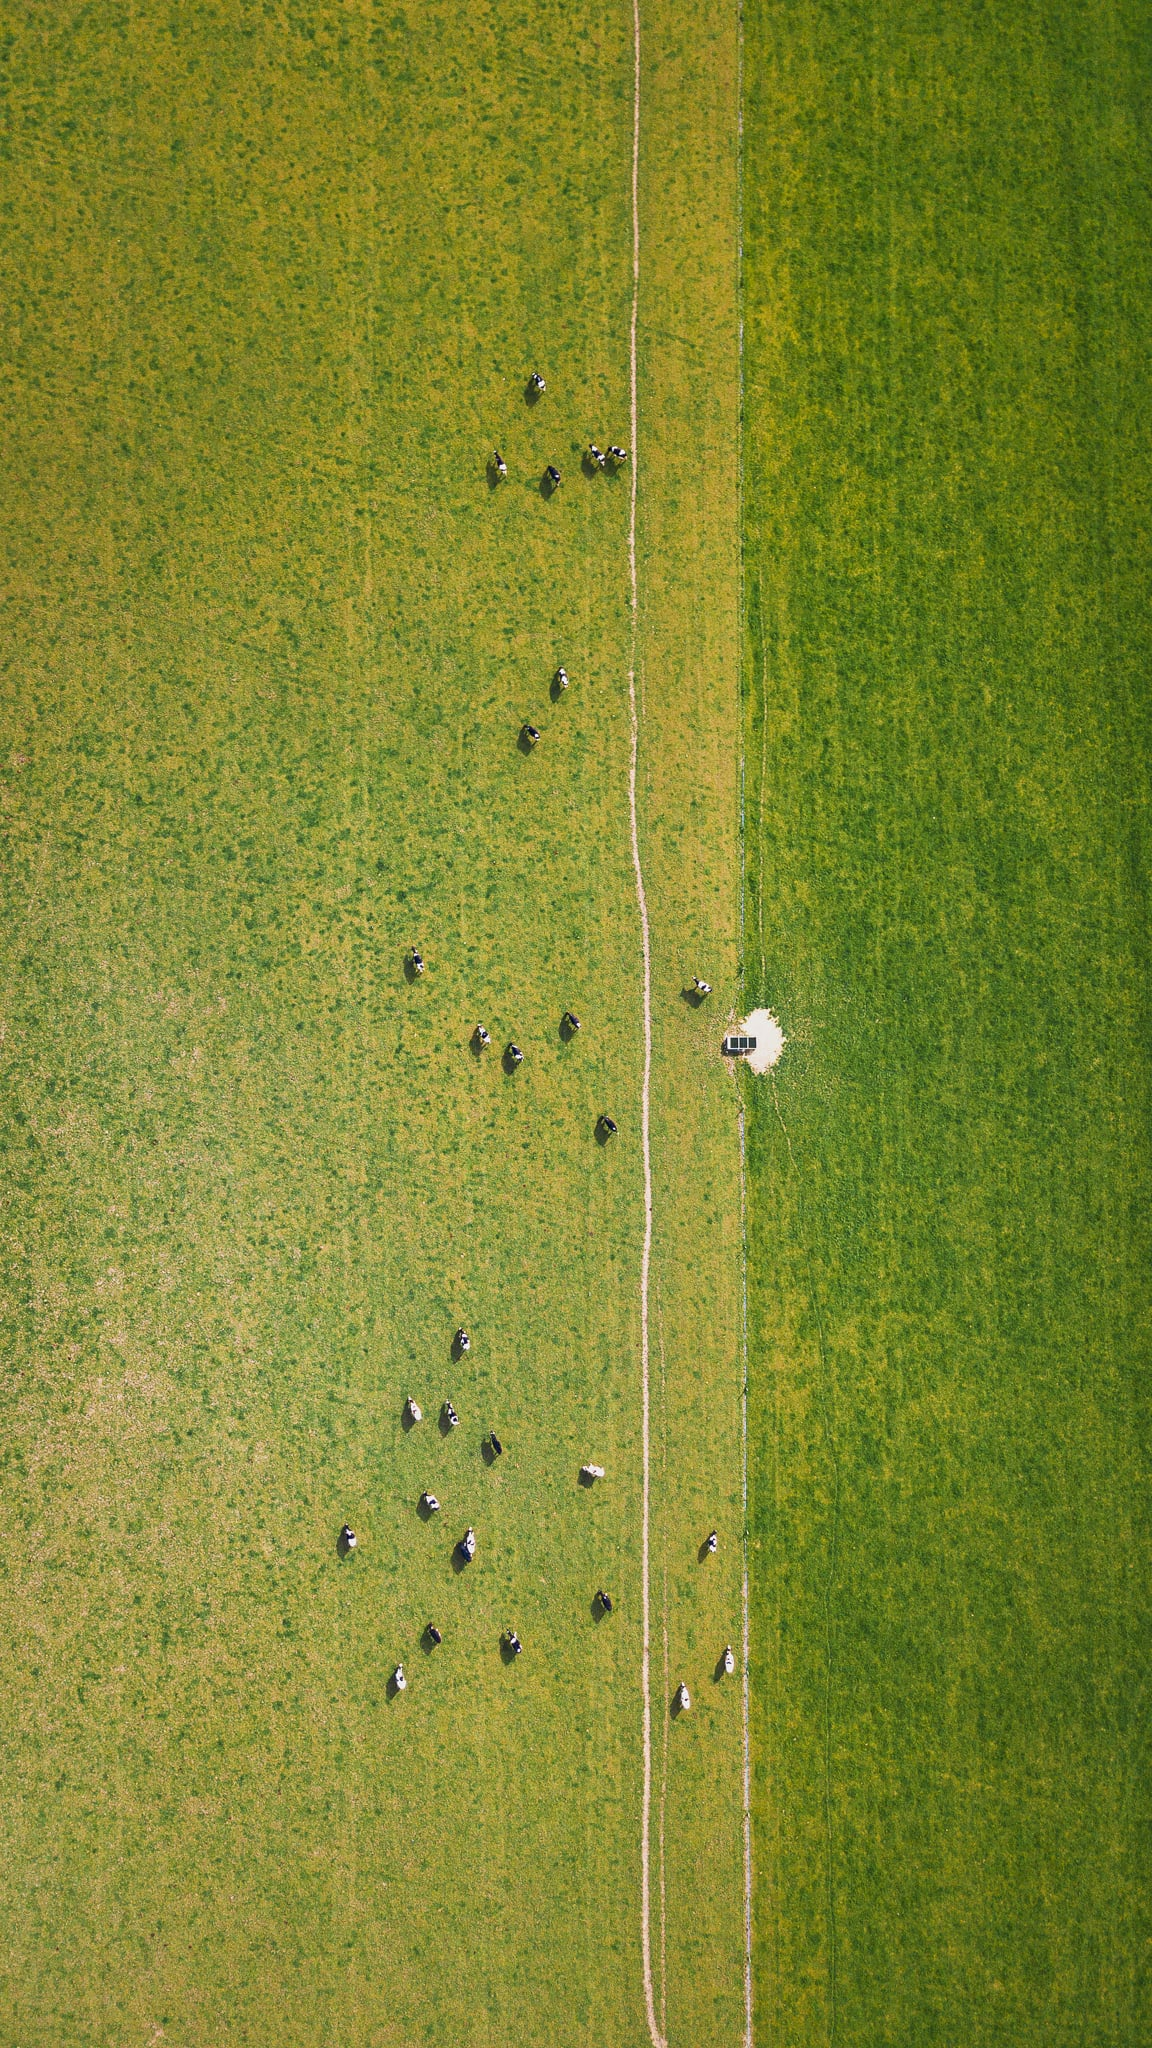 Aerial view of two green fields in spring with cattle in the left one